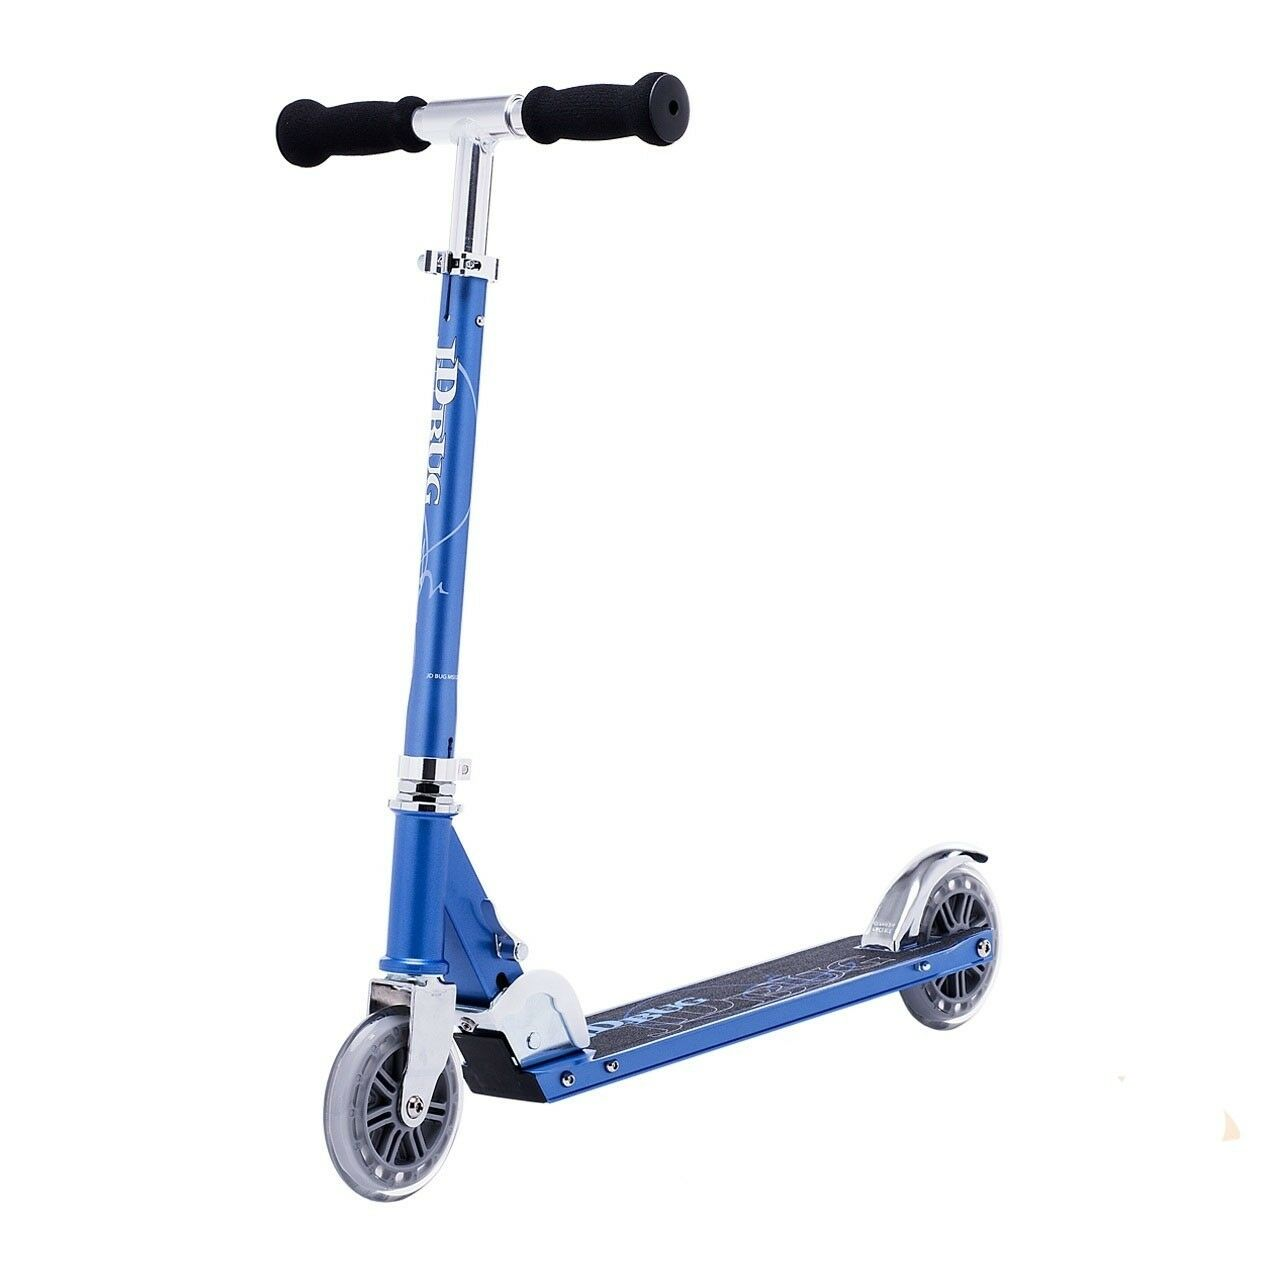 JD Bug Original Street  120 Series  Scooter Adjustable Folding Scooter  - Reflex Blau 1b981a